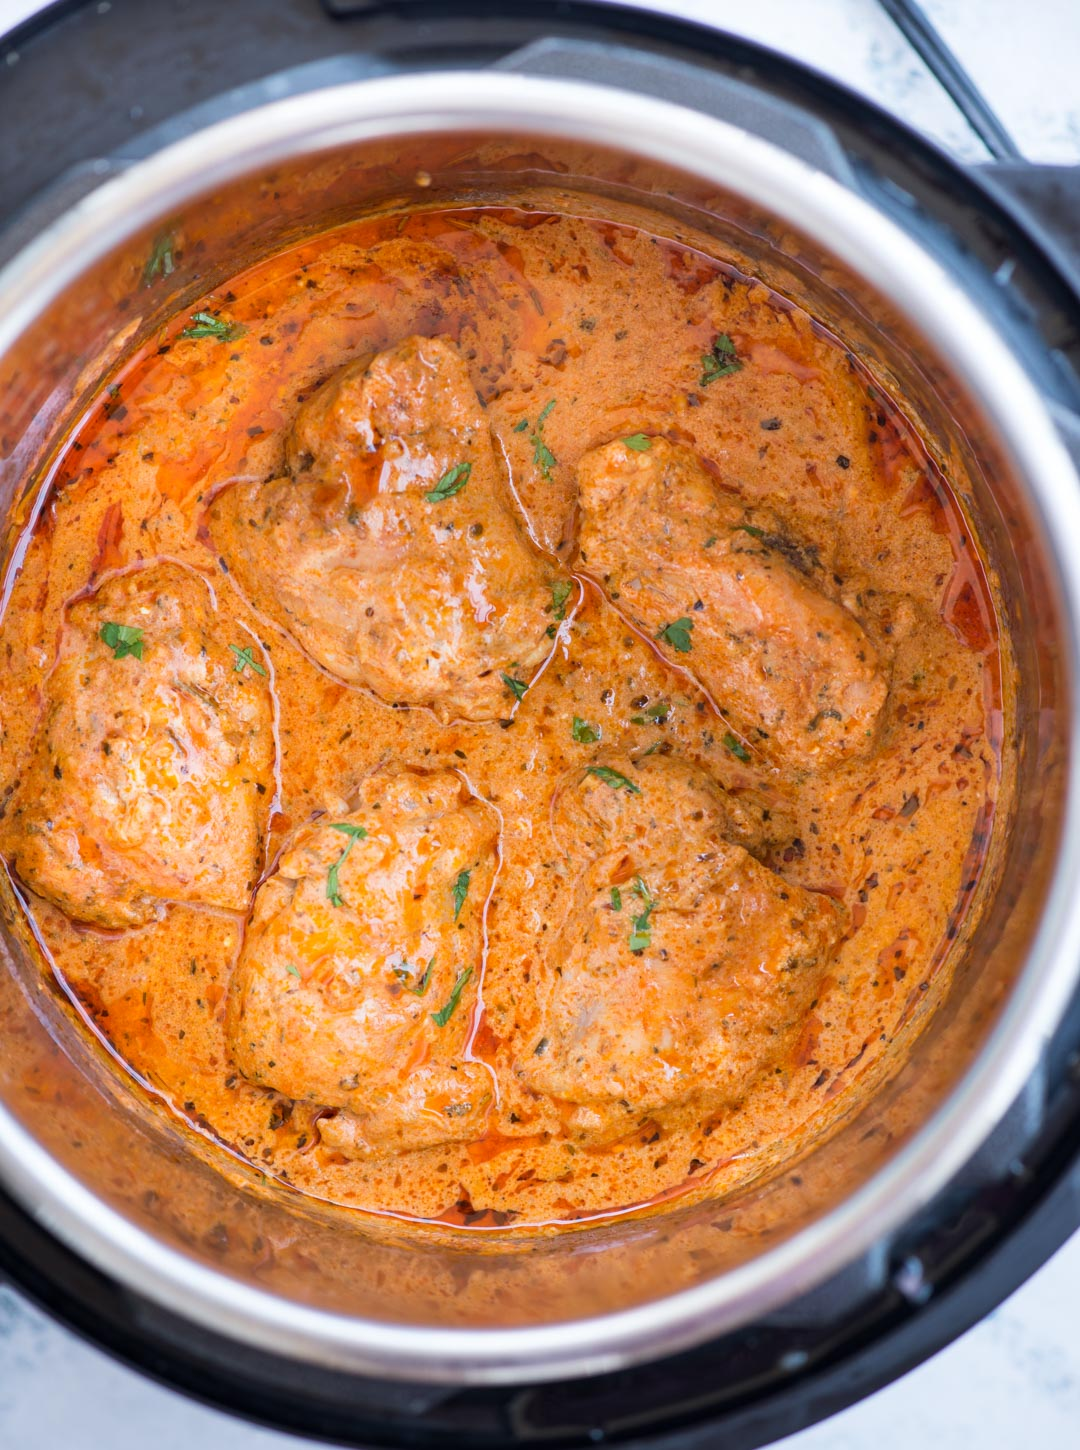 Instant Pot Chicken in a creamy tomato sauce with juicy chicken thighs, buttery tomato sauce is incredibly delicious and takes less than 30 minutes to make.